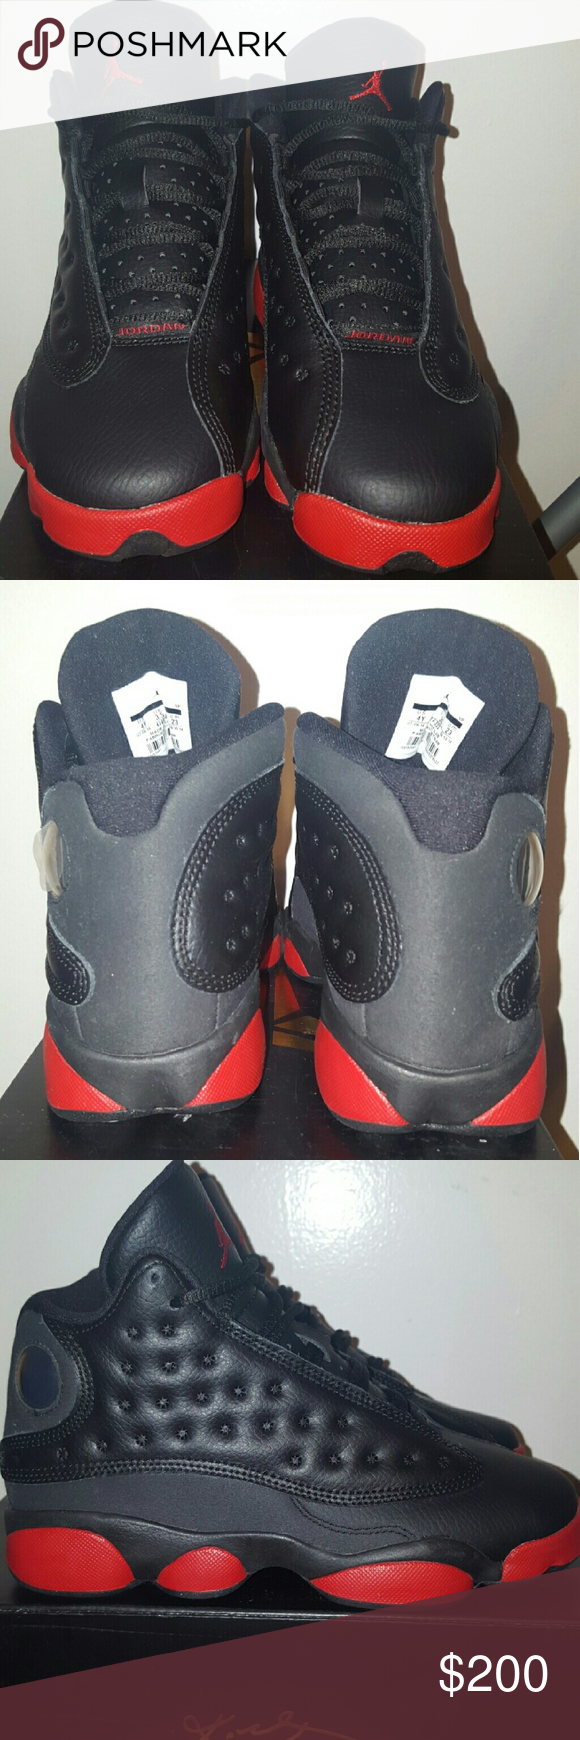 check out b9b38 e81f2 Air Jordan 13 Dirty Bred Black   Red